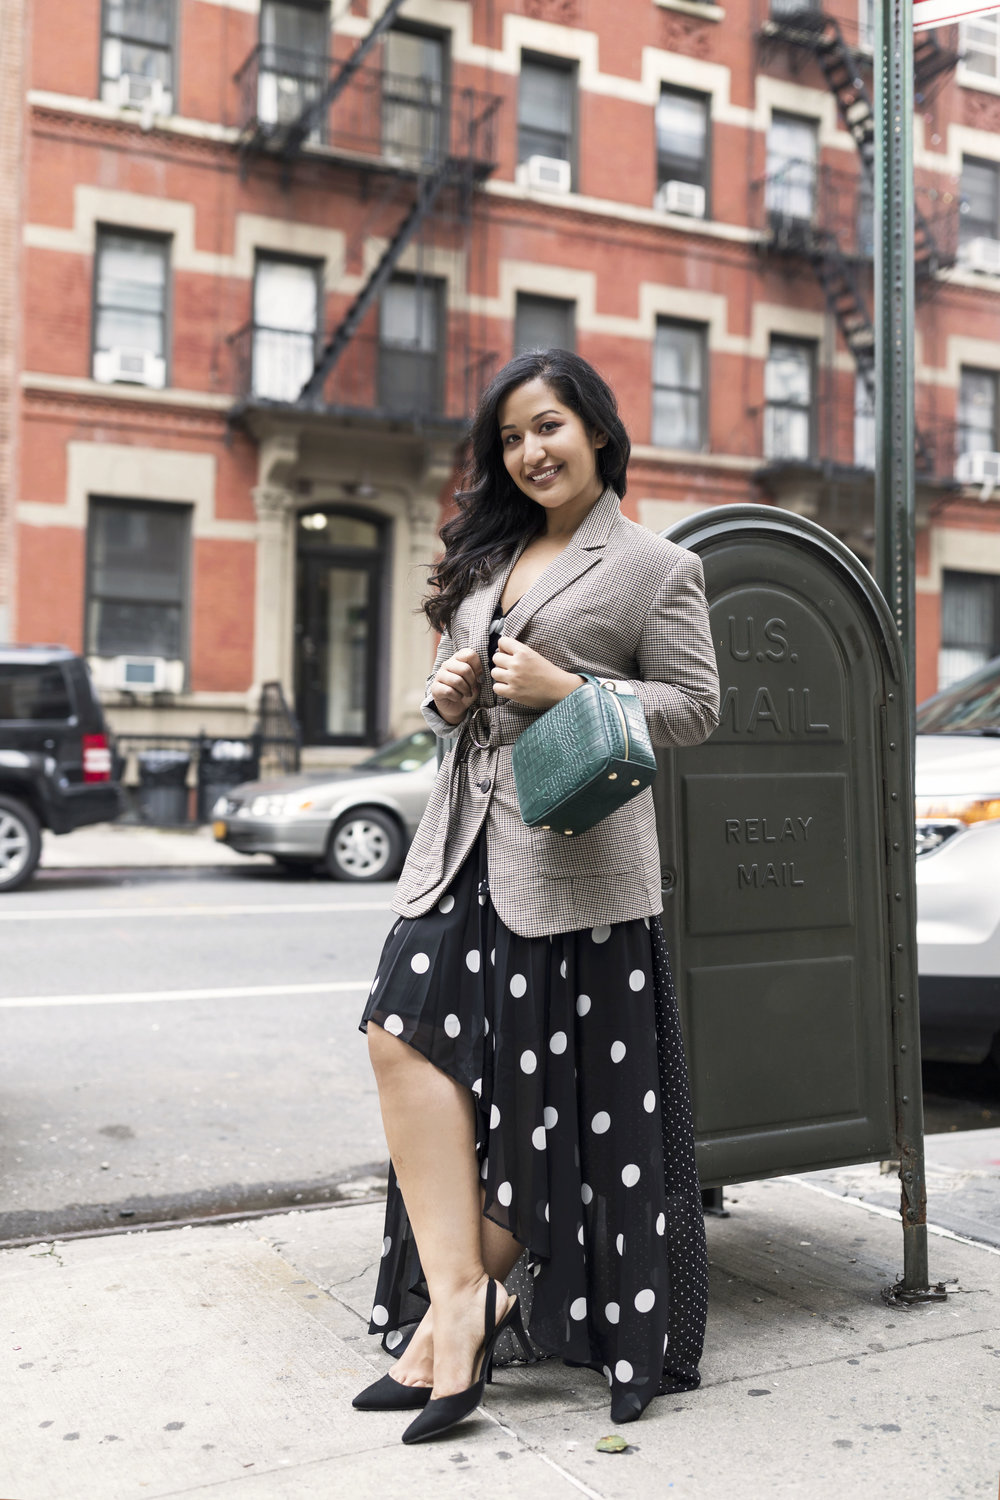 Throw on your favorite blazer on top of a dress - Chic and subtle with one step